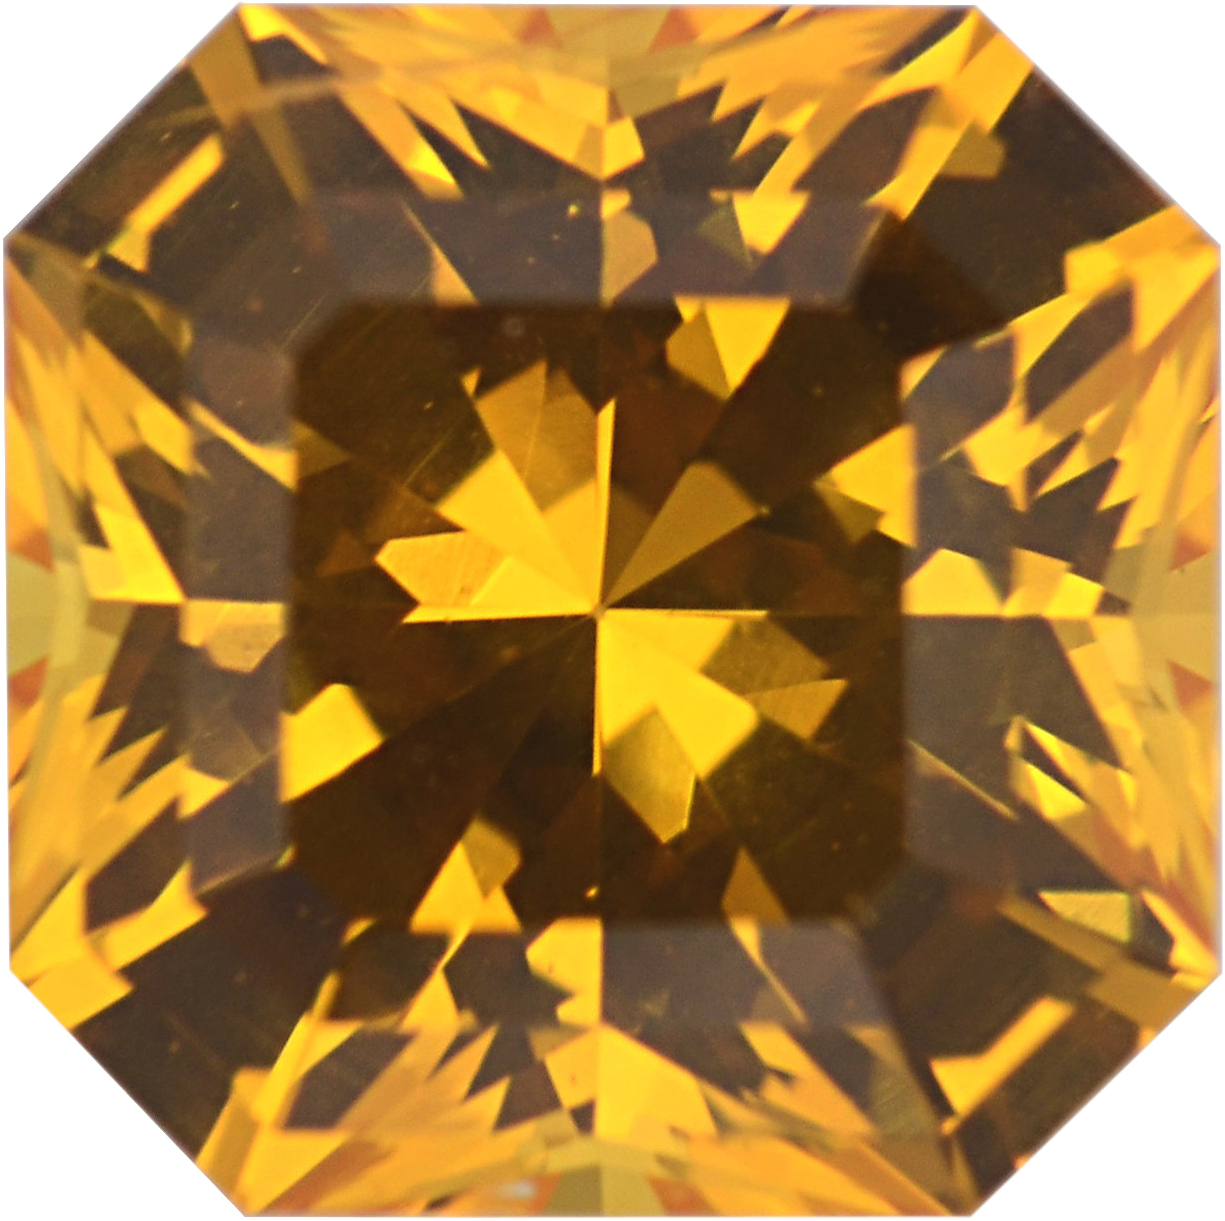 Low Price On Sapphire Loose Gem in Asscher Cut, Medium Orangy Yellow, 5.94 x 5.93  mm, 1.28 Carats